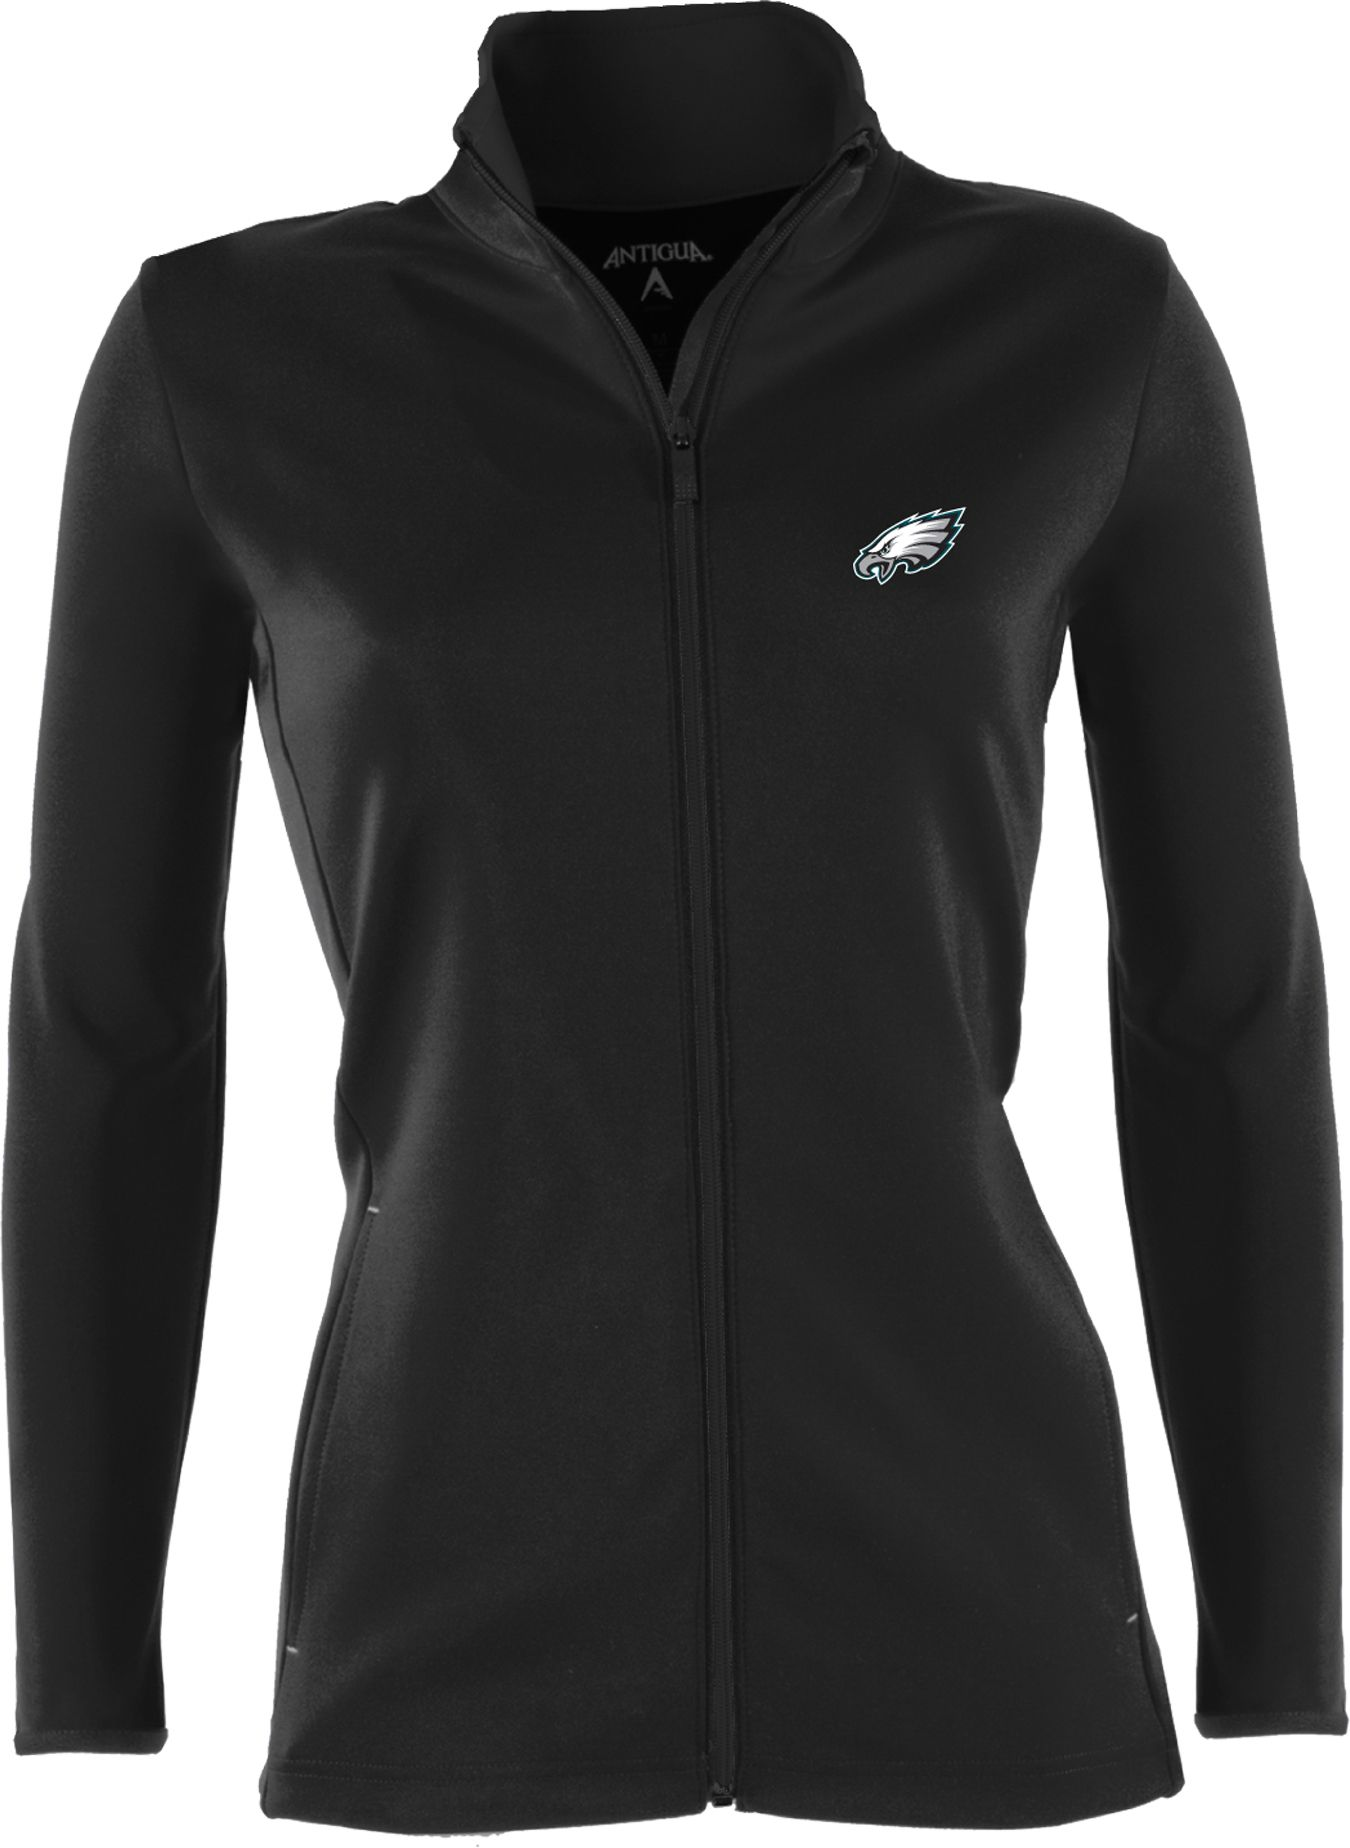 Antigua Women's Philadelphia Eagles Leader Black Full-Zip Jacket. 0:00.  0:00 / 0:00. noImageFound ???